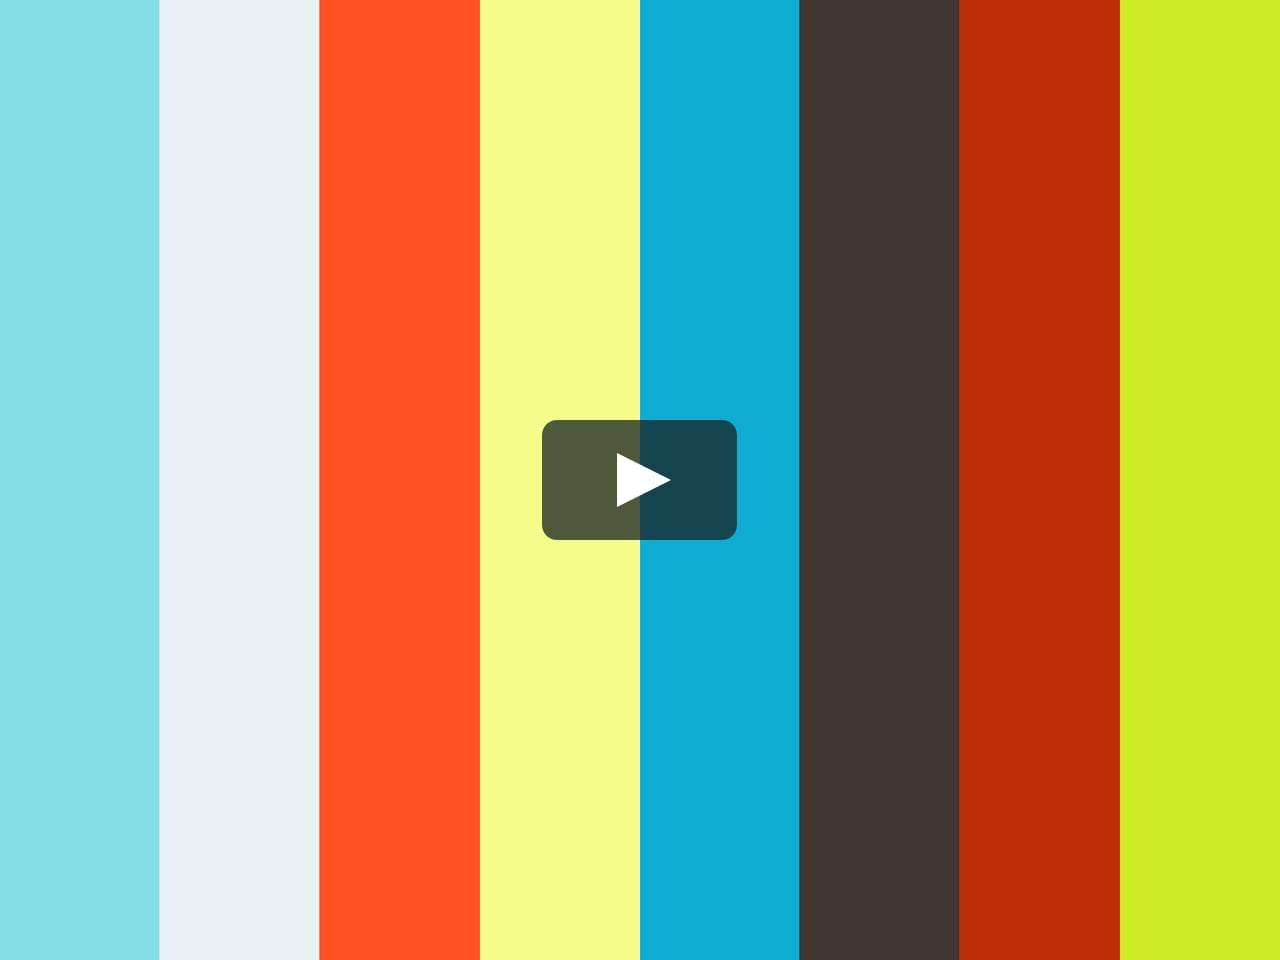 Numbers B Bose Einstein Statistics On Vimeo